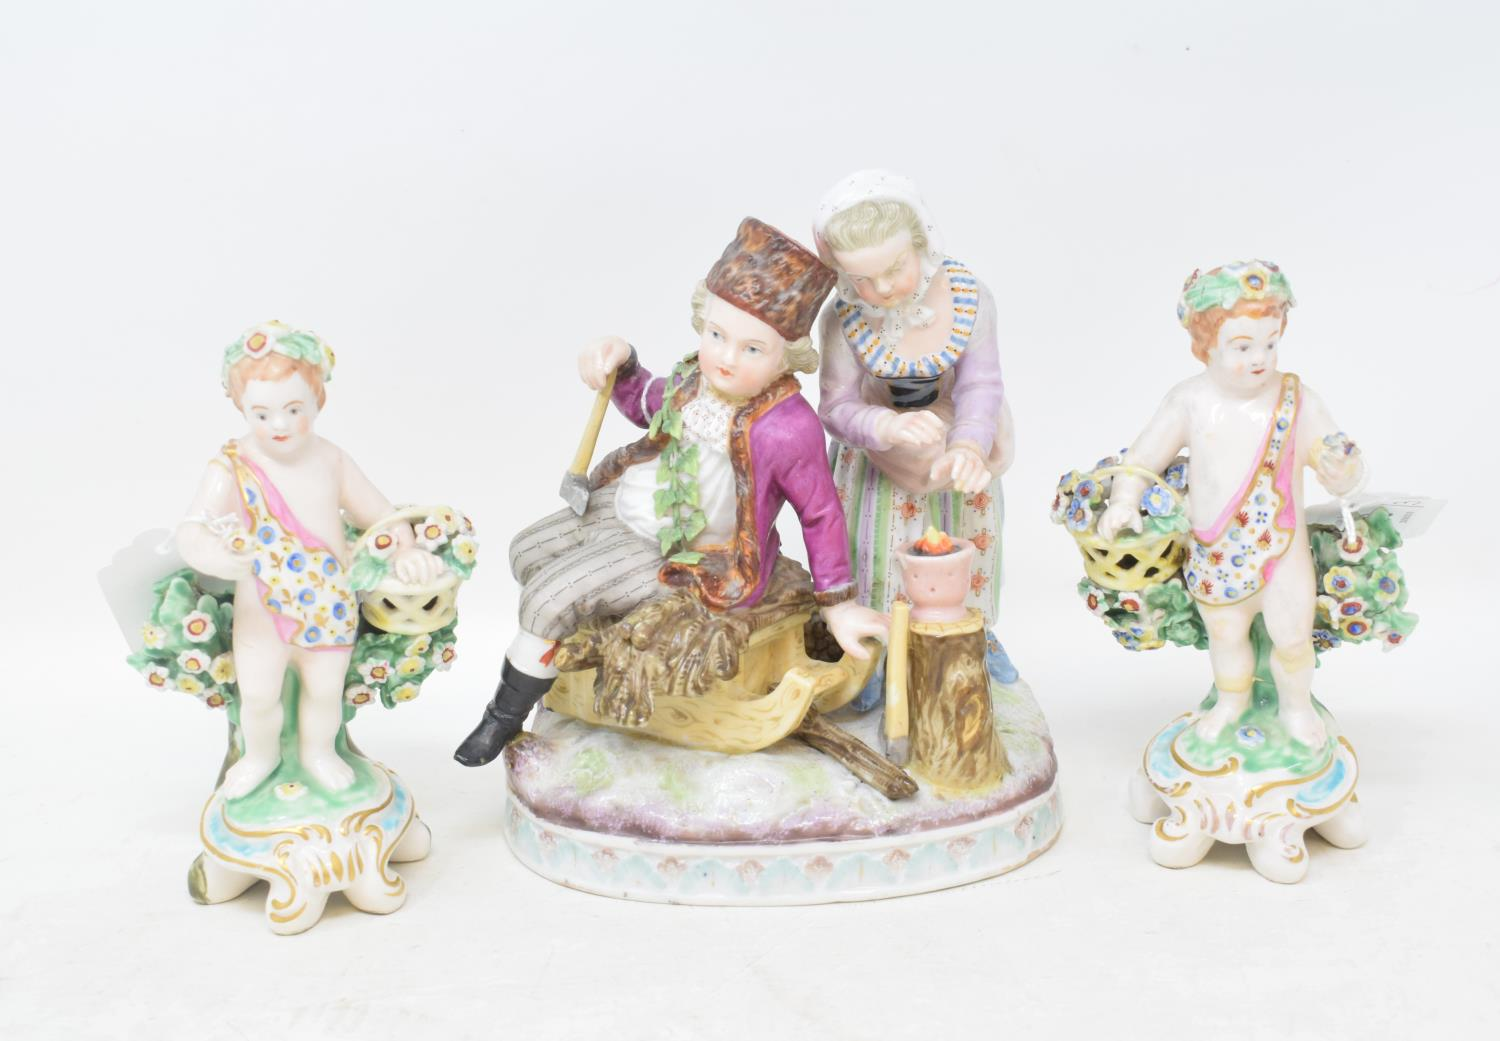 Lot 58 - A Meissen style porcelain group, in the form of a boy wearing a fur hat holding an axe, seated on